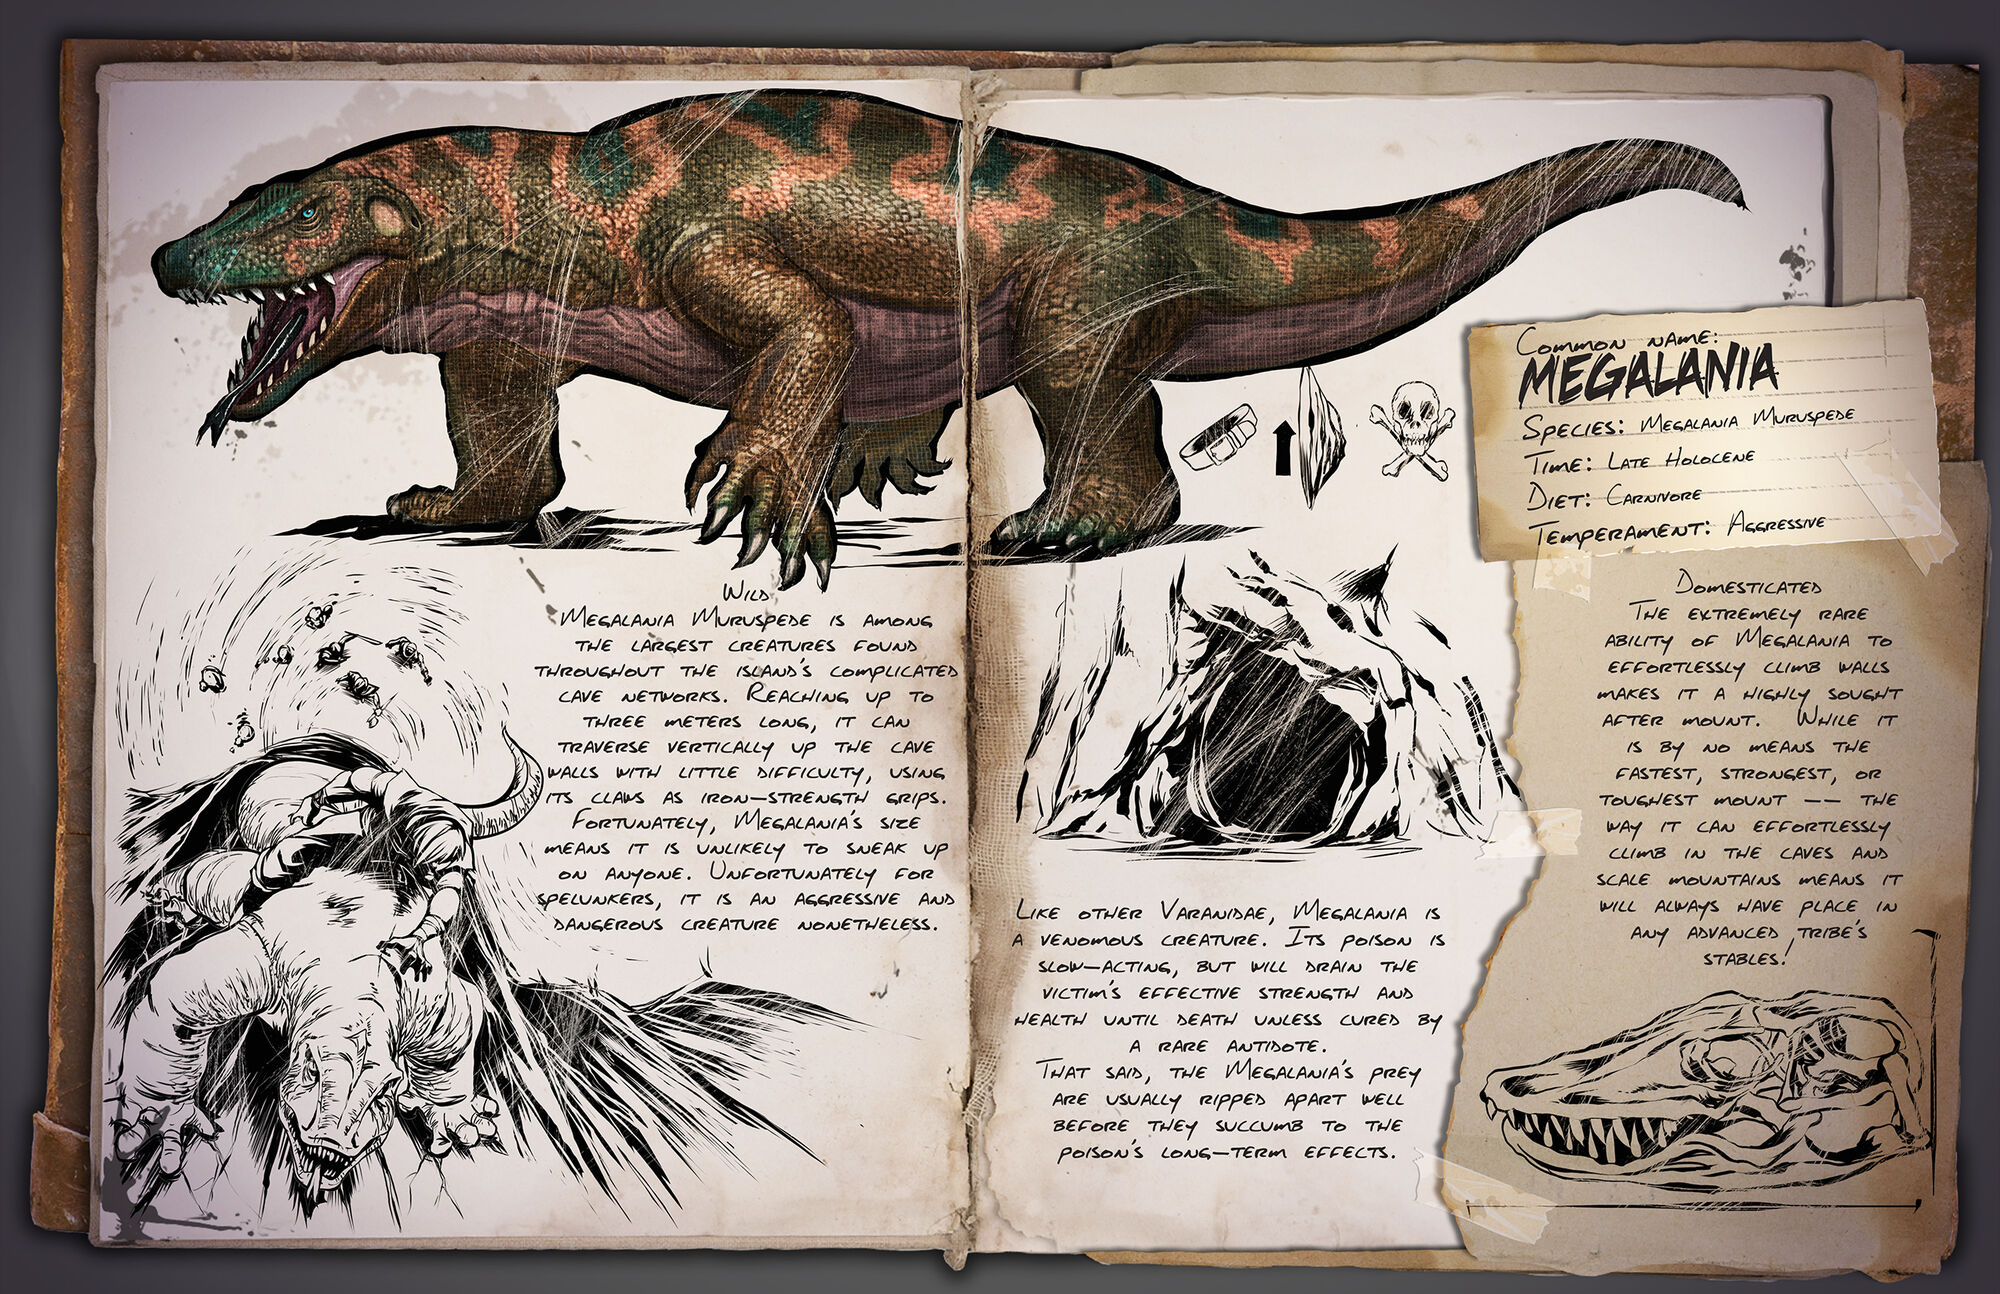 Megalania | ARK: Survival Evolved Wiki | FANDOM powered by Wikia